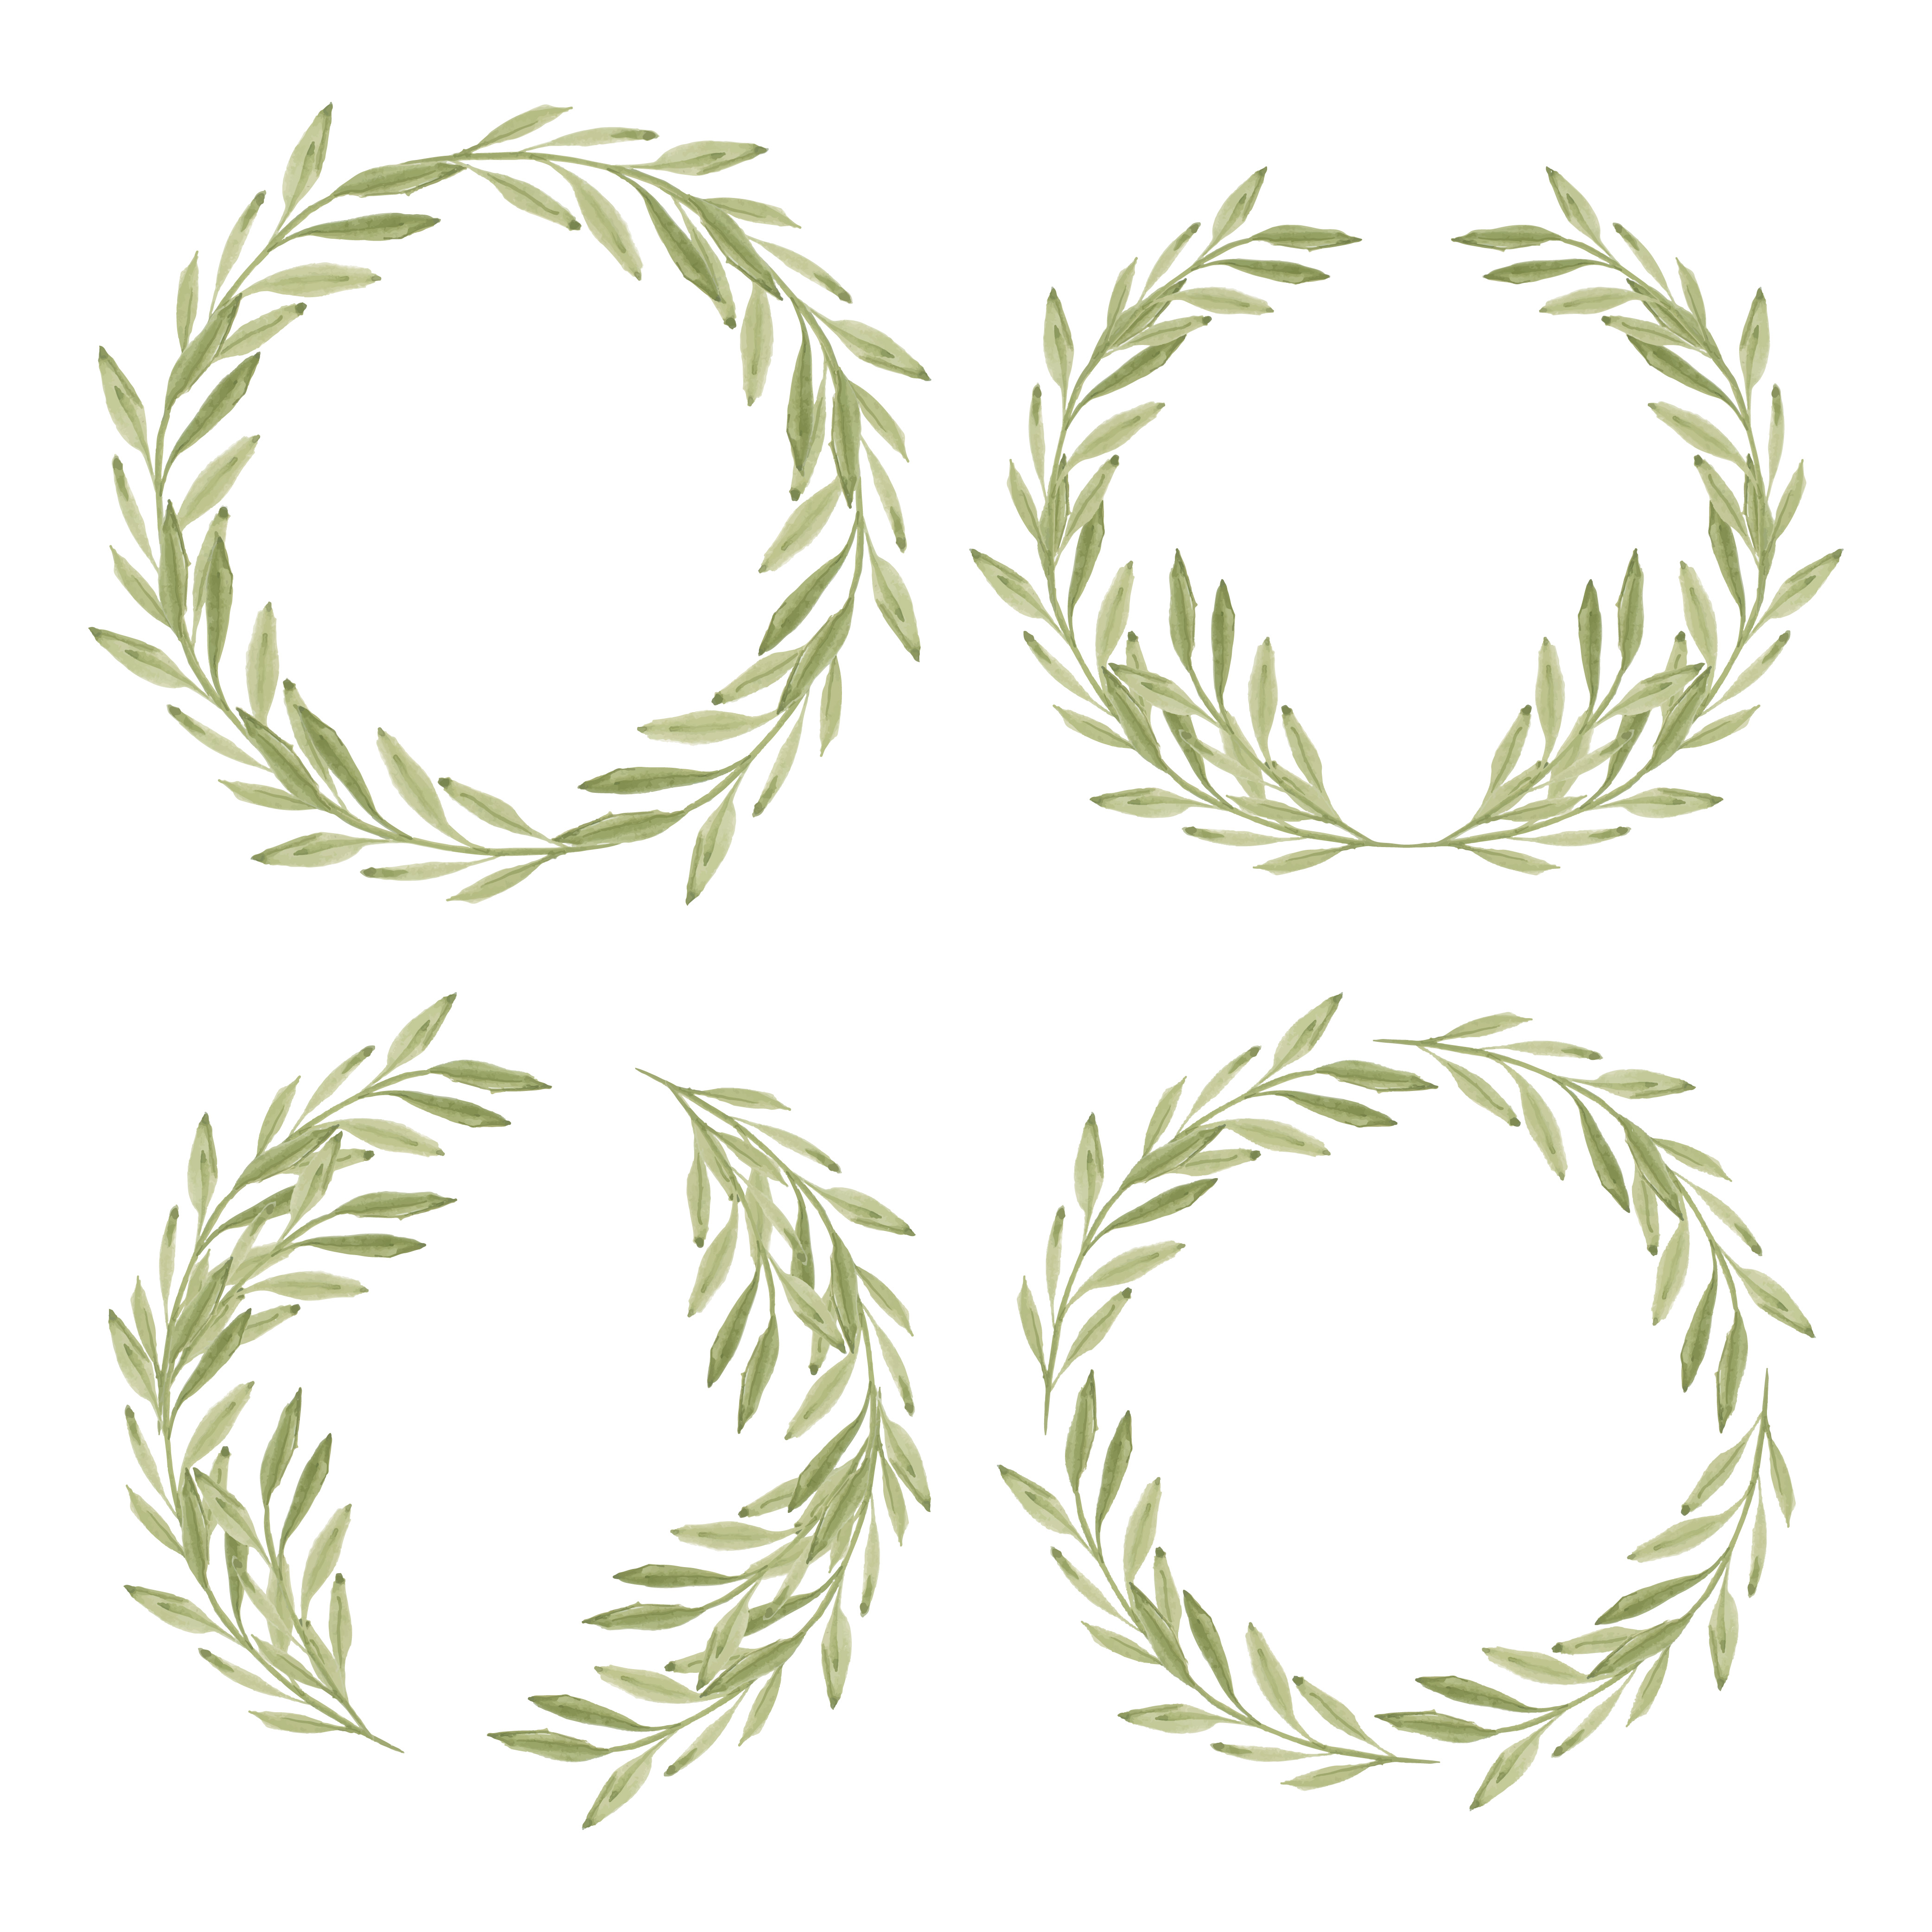 Floral And Botanical Logos Collection: Watercolor Green Leaf Wreath Frame Collection